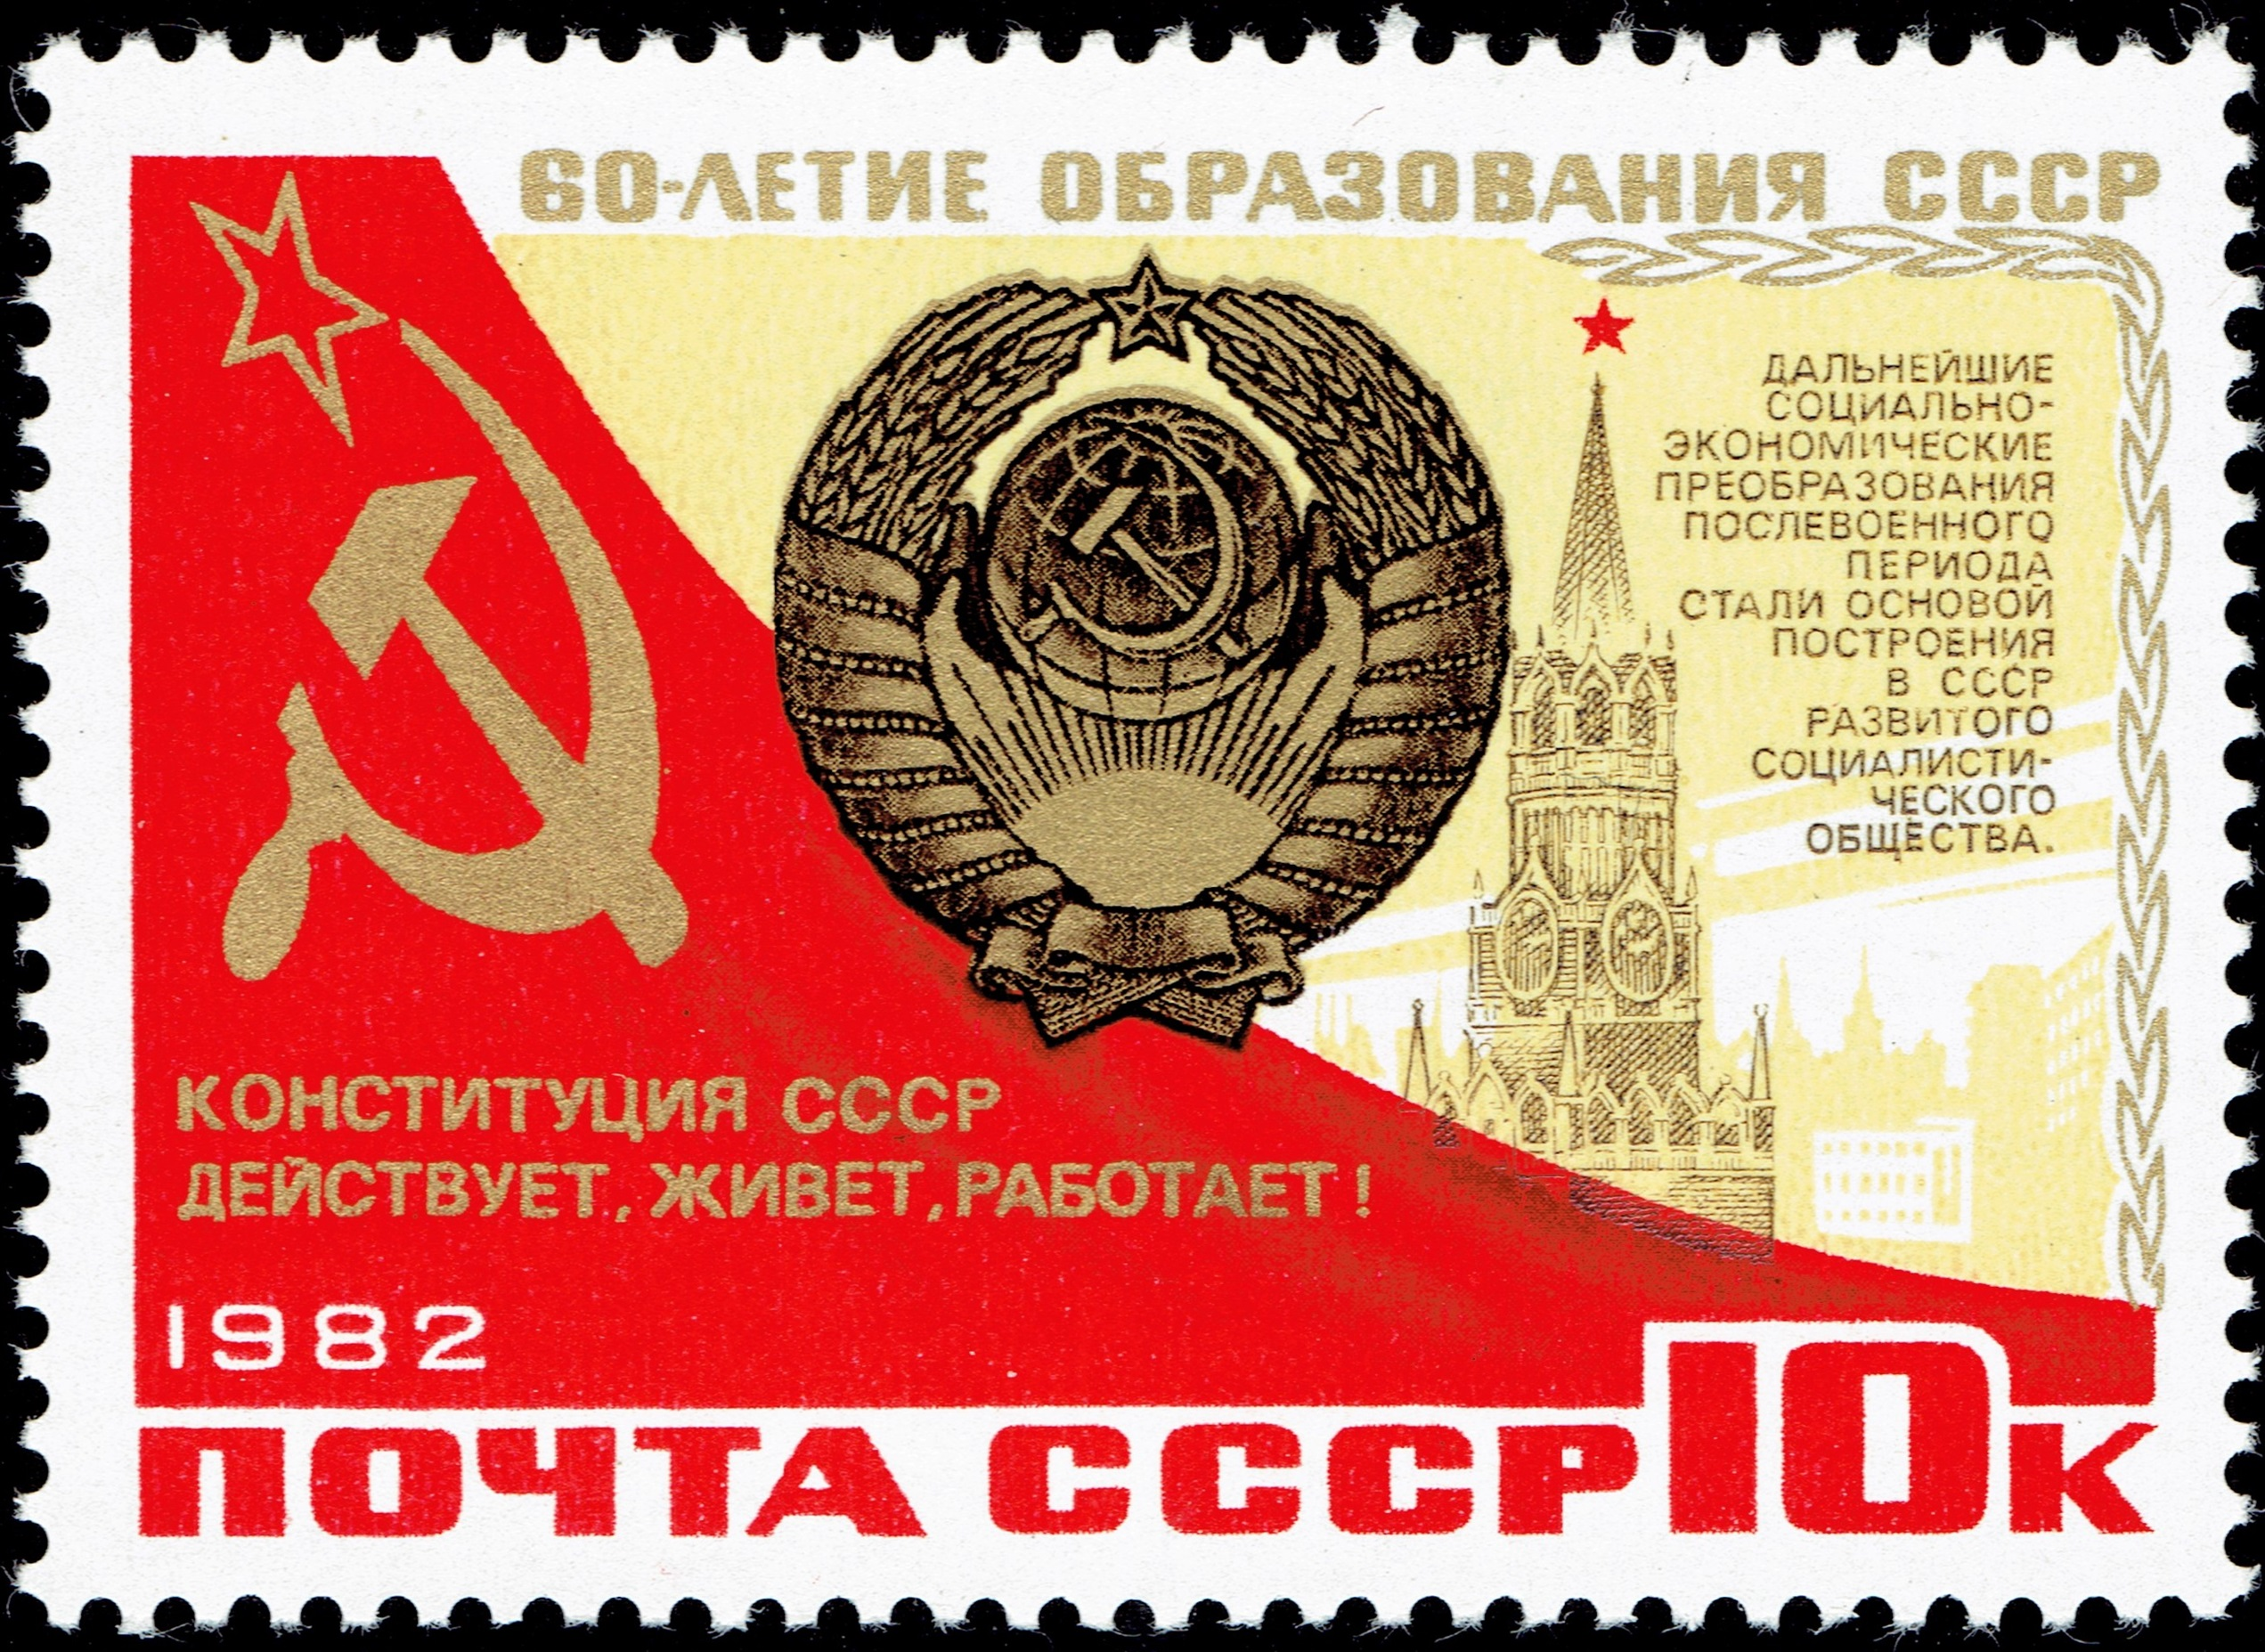 The socialist camp is ... The USSR and the countries of the socialist camp